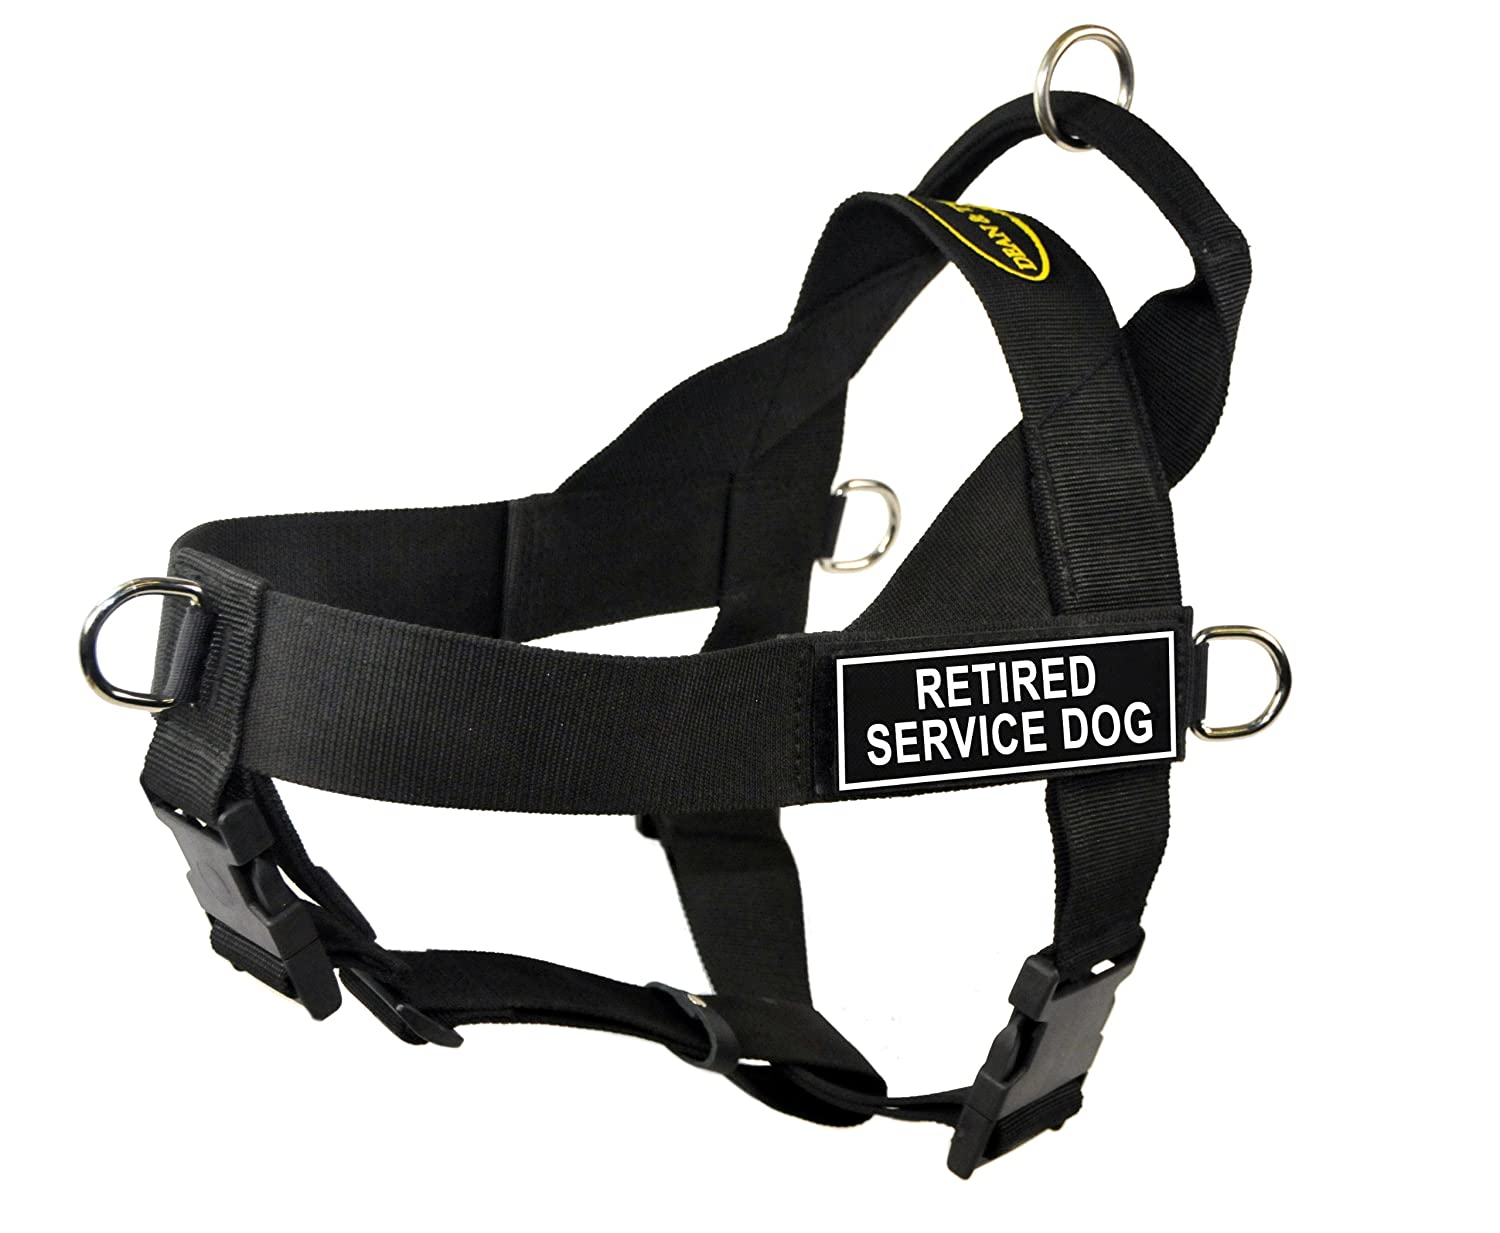 Dean & Tyler Universal No Pull 21-Inch to 25-Inch Dog Harness, X-Small, Retired Service Dog, Black